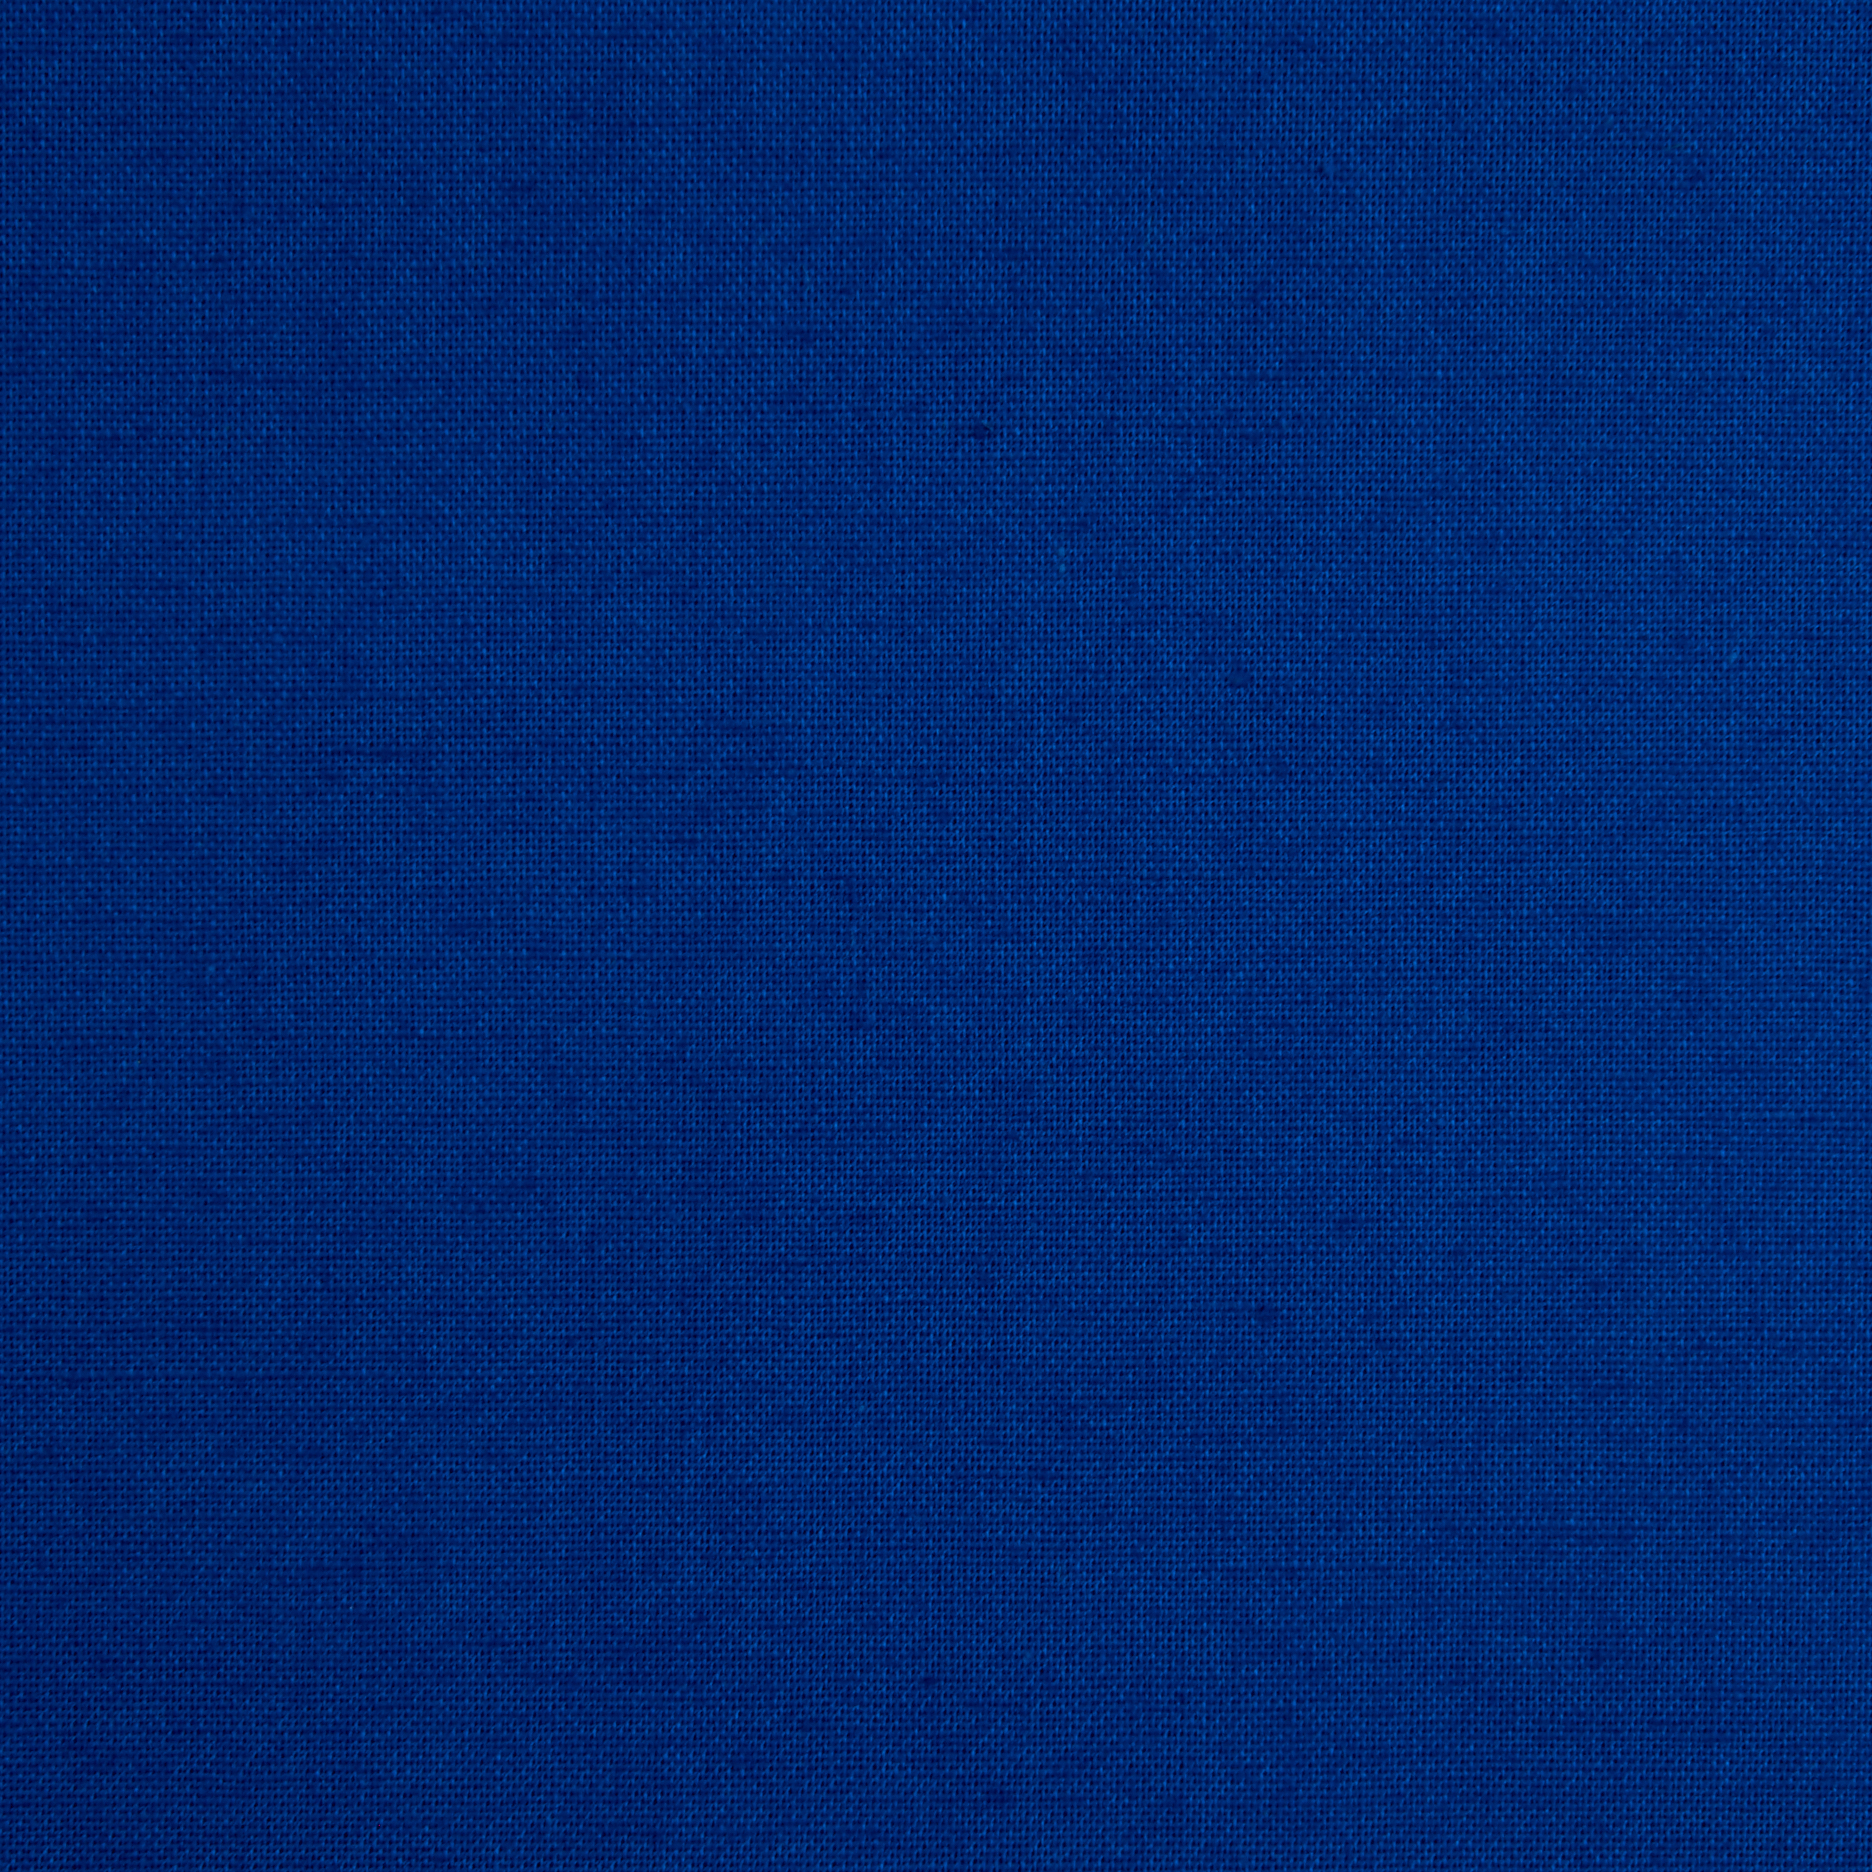 Kona Cotton Solid 108'' Wide Quilt Back Royal Blue Fabric